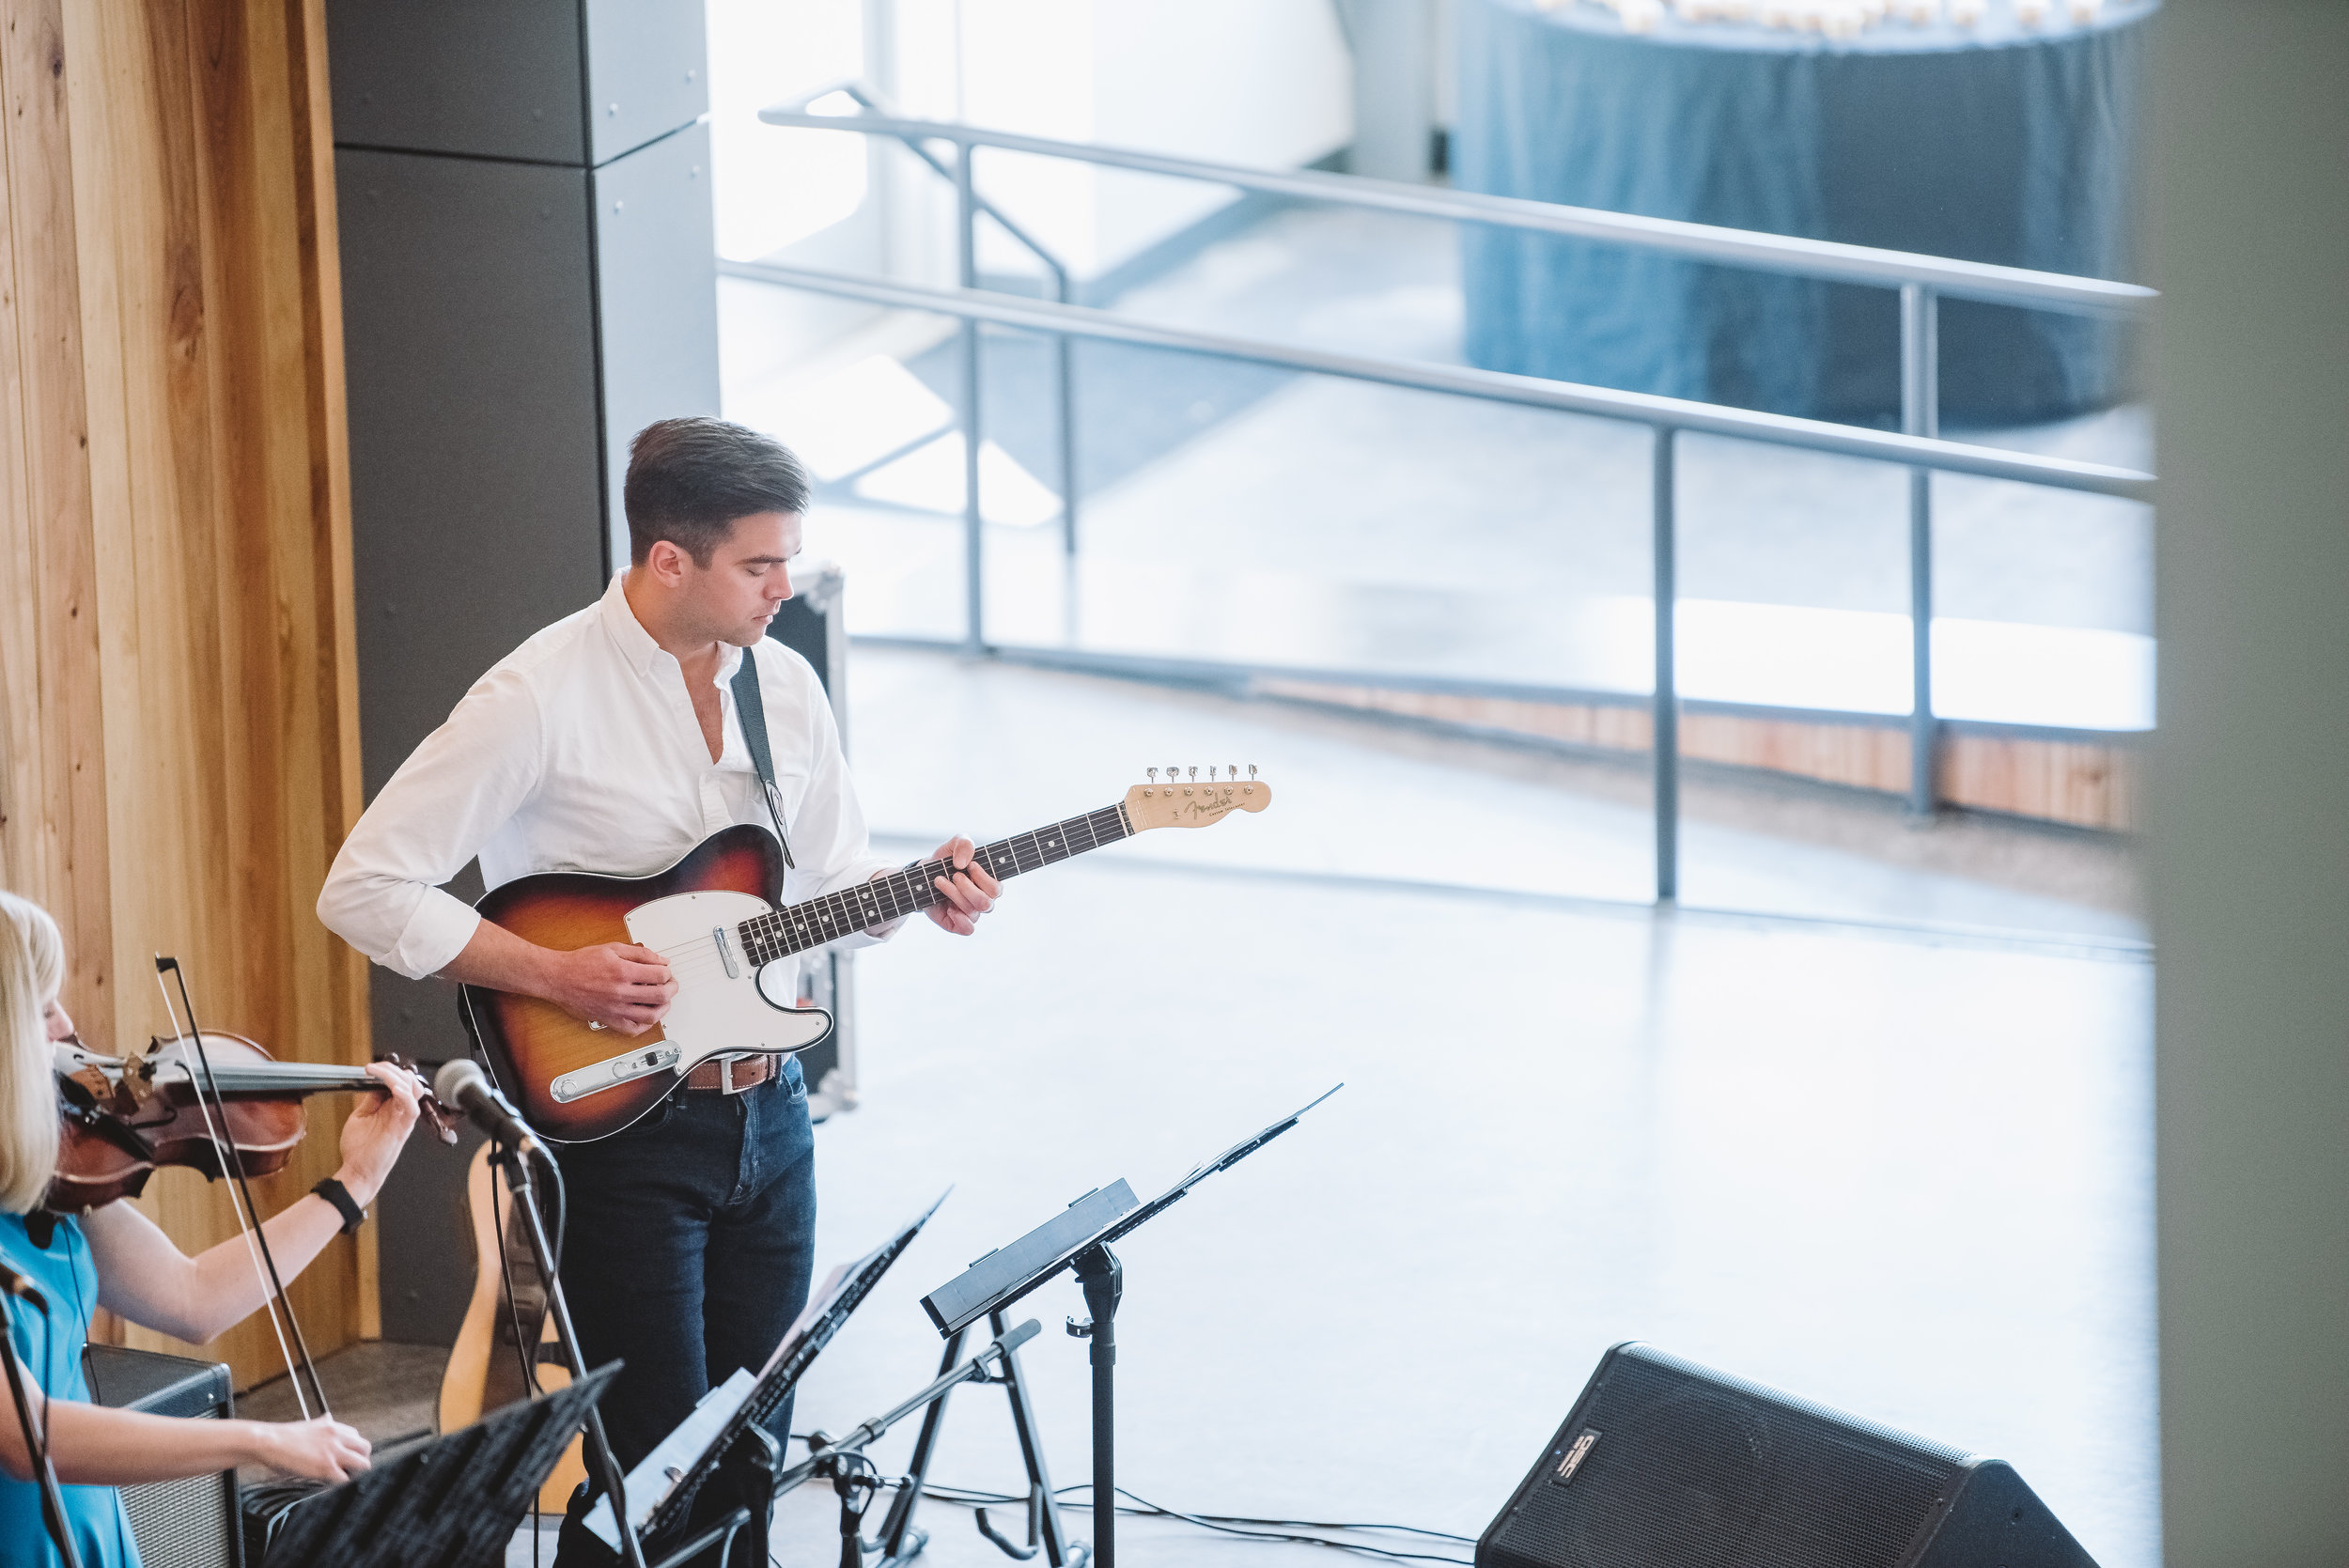 MUSIC - The goal of the musicians at DOWNTOWN CHURCH is to blend the old and new, the familiar with the unexpected — creating a sound somewhere between secular and sacred.